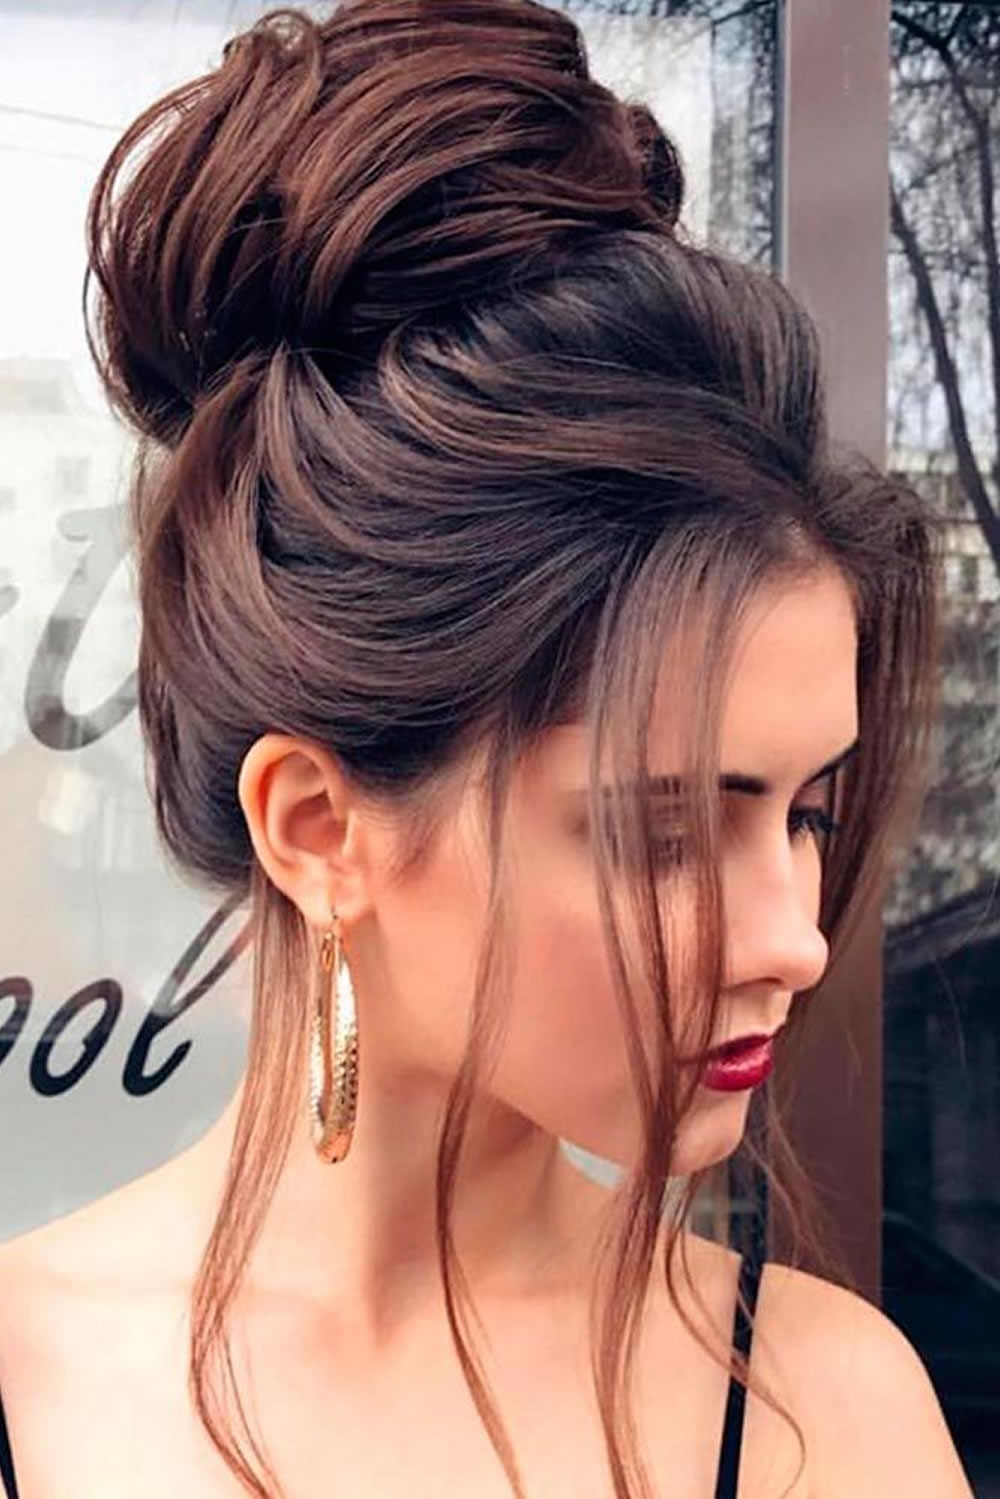 hair-styles-what-to-wear-christmas-day-dinner-holiday-outfits-winter-messy-bun-topknot.jpg